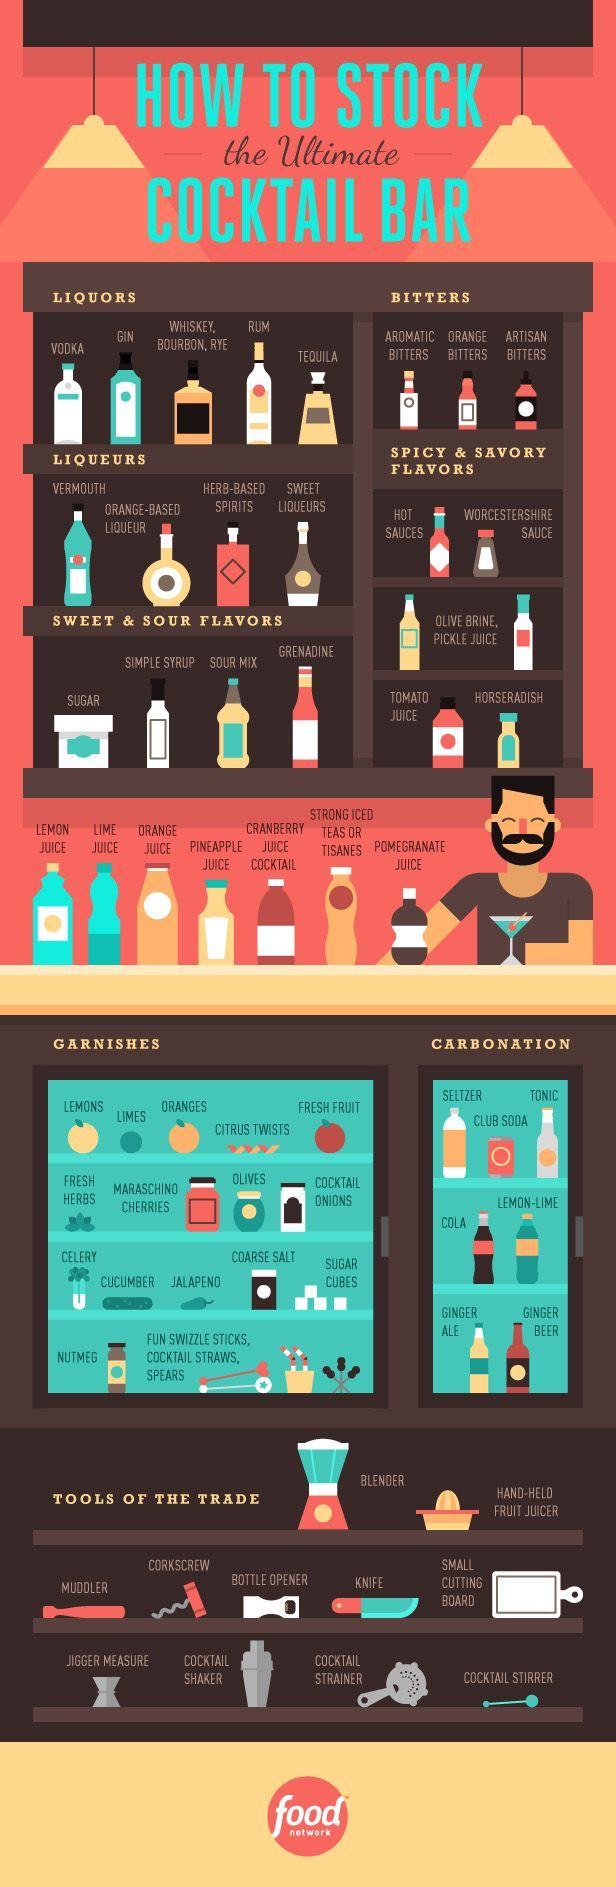 How to Stock a Cocktail Bar : Food Network